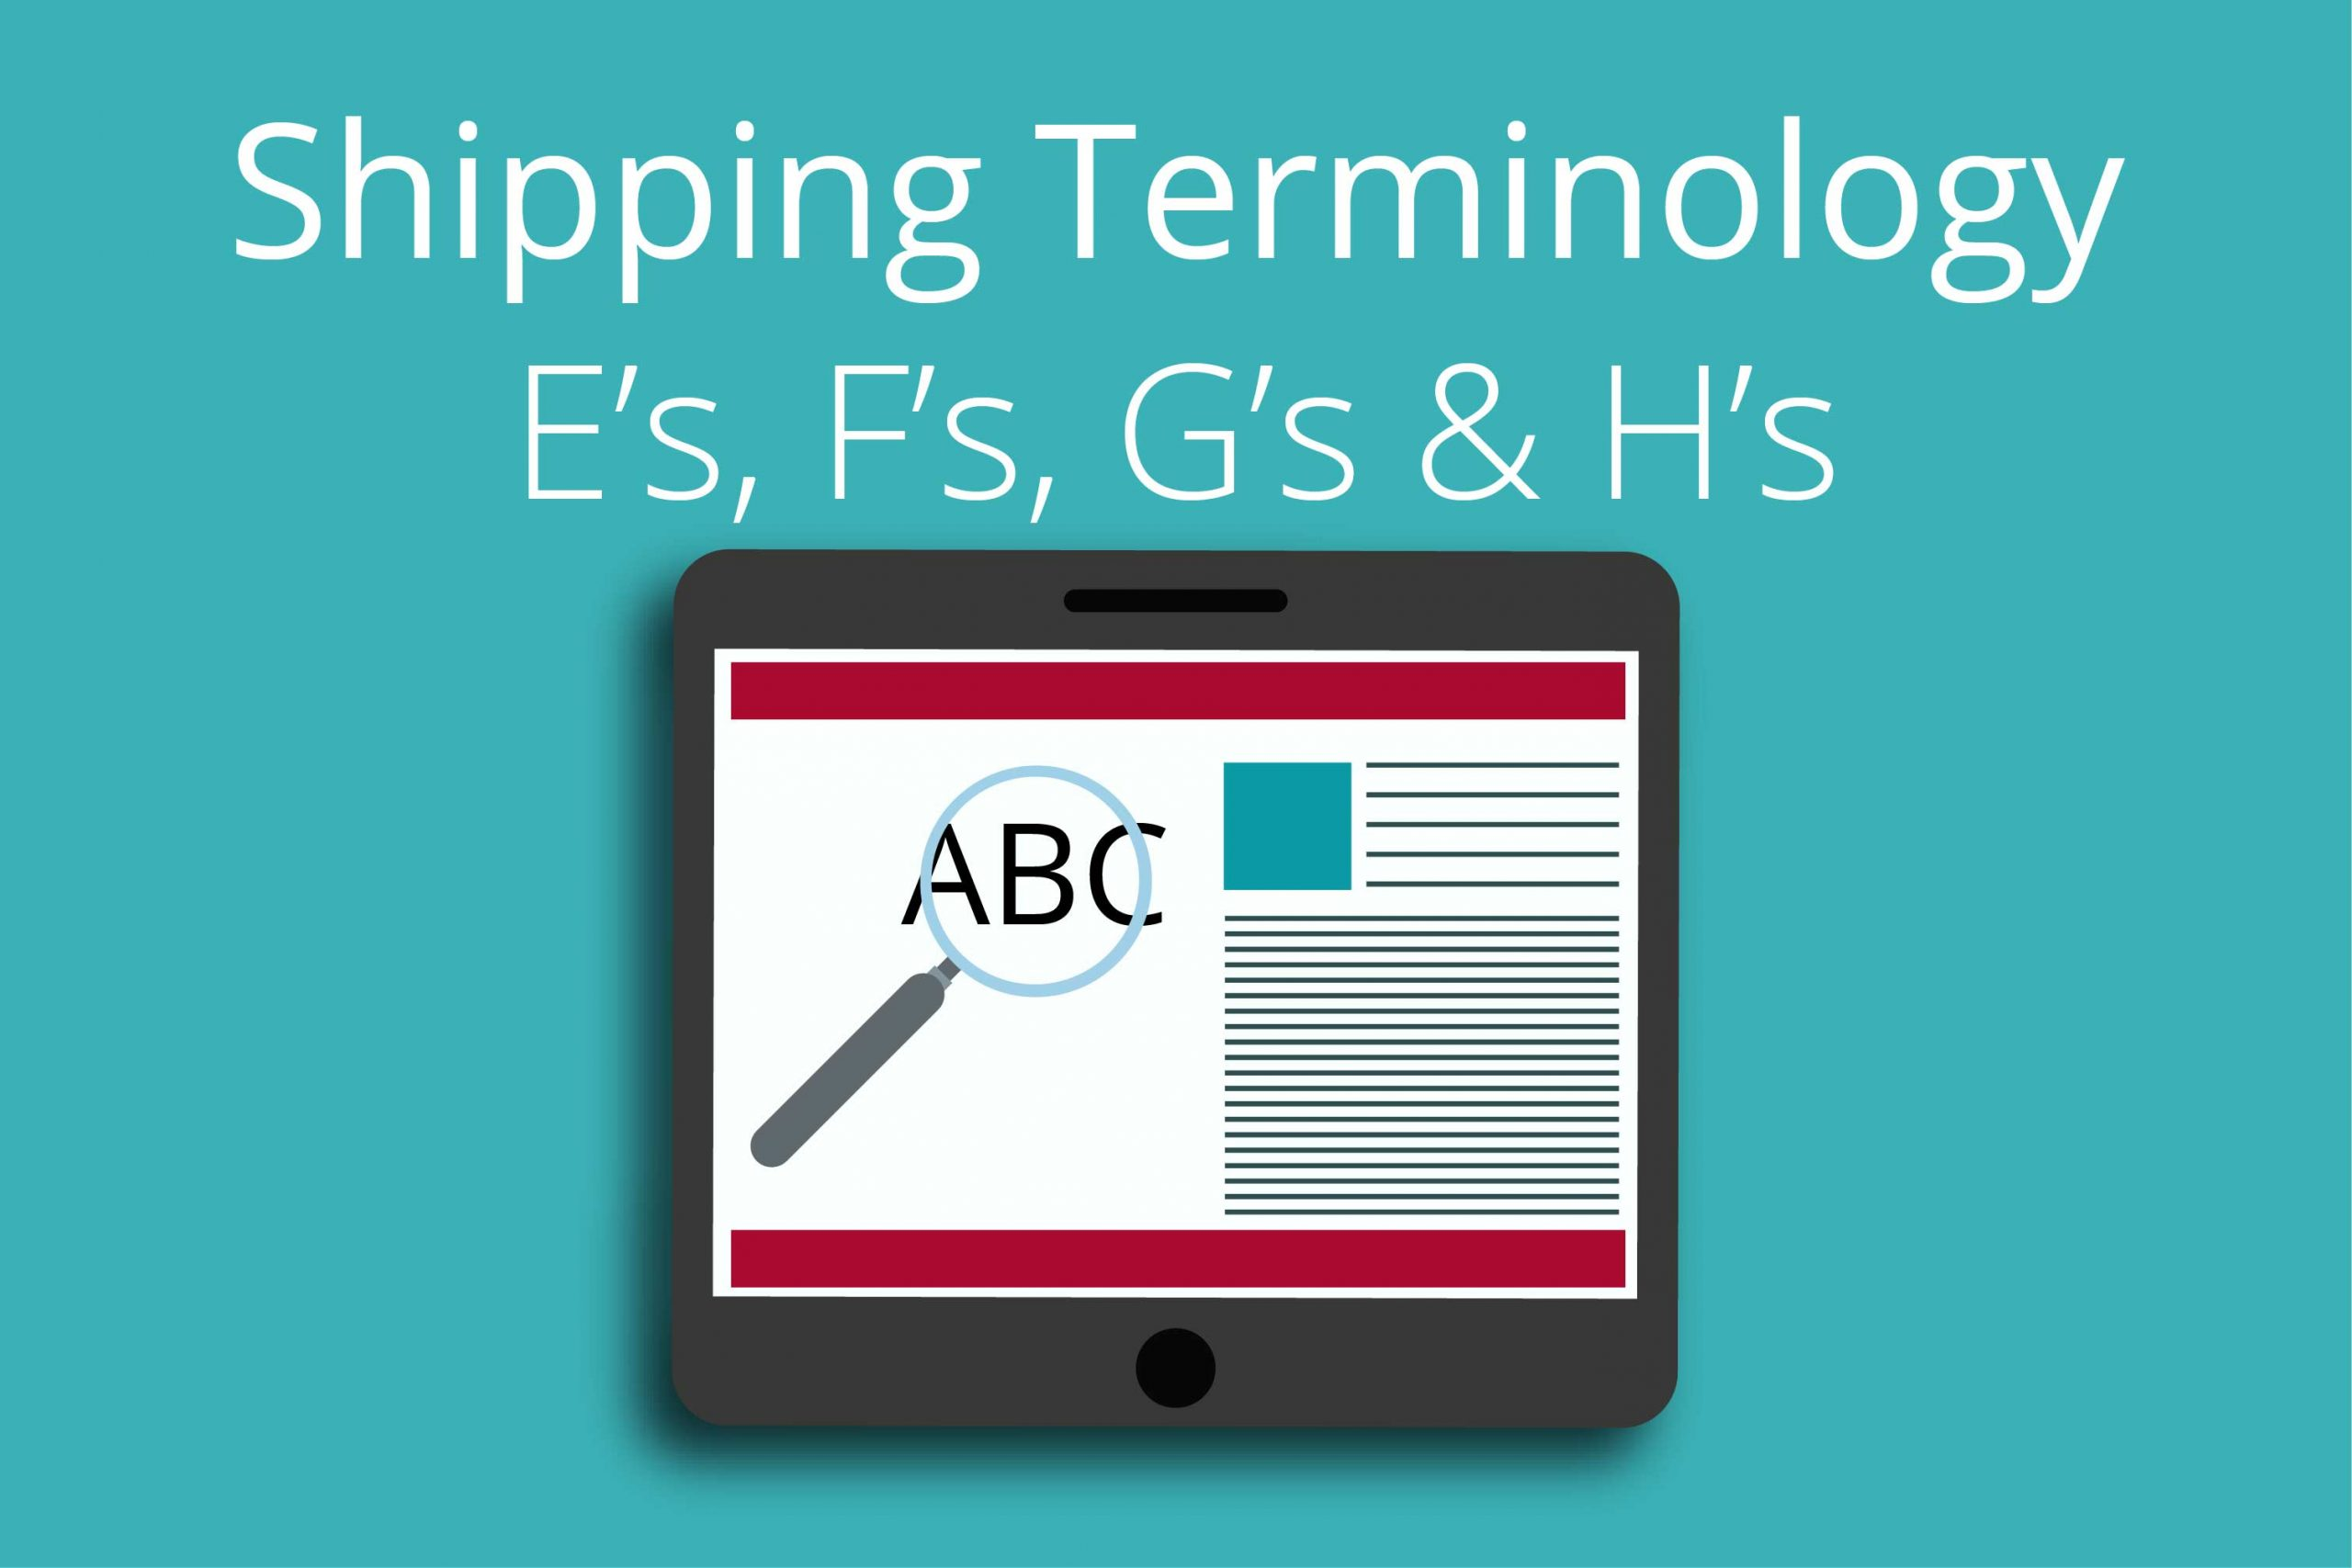 Shipping Terminology (E's F's G's & H's)